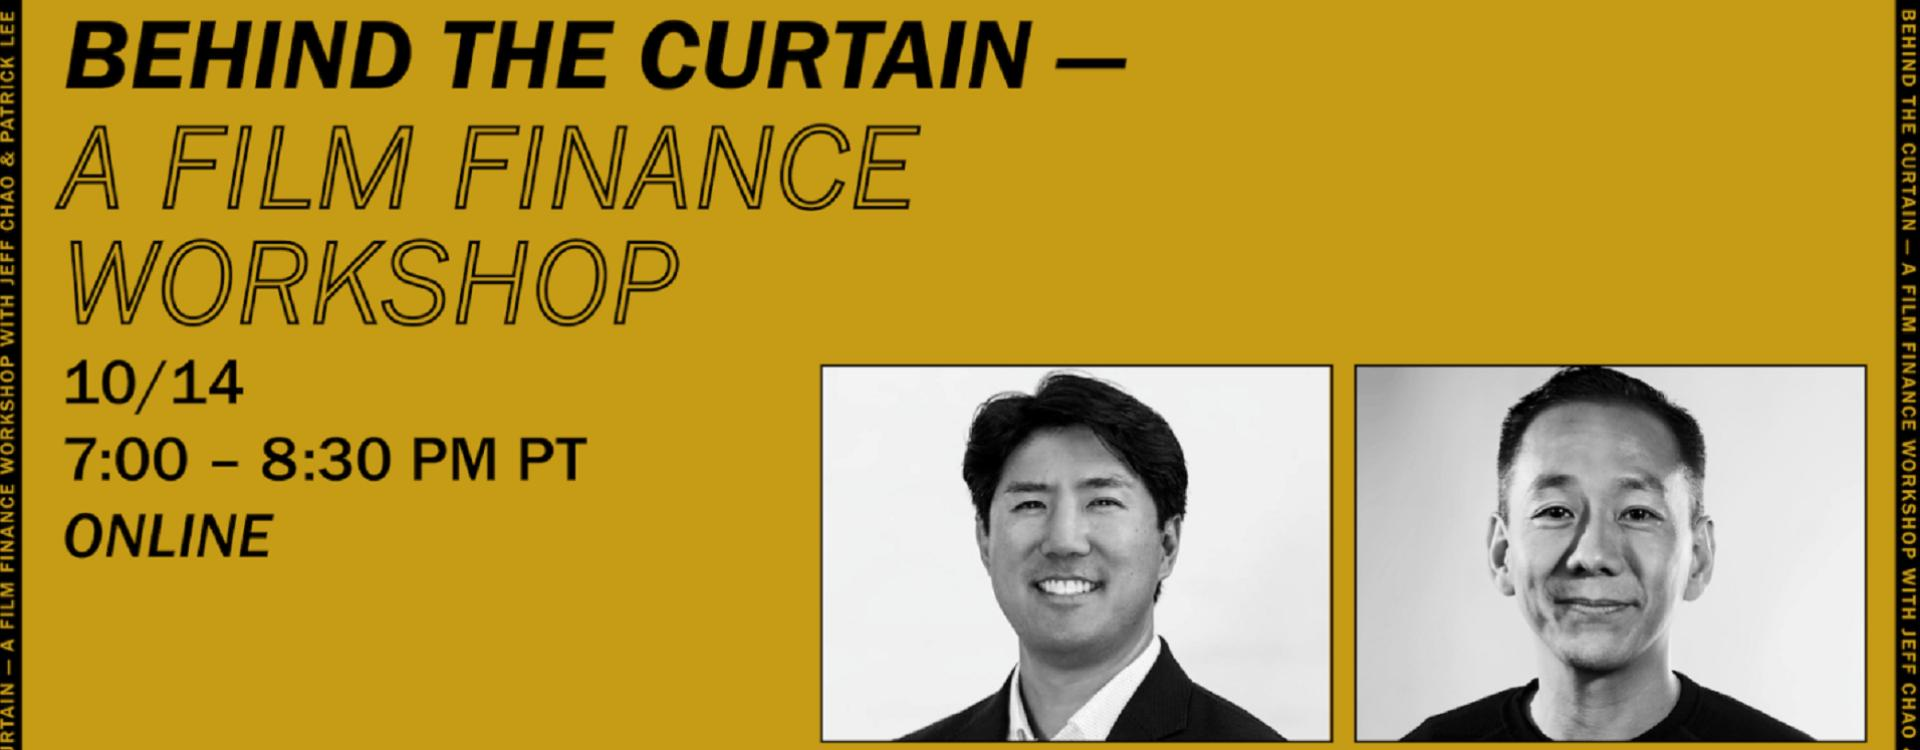 "4th Annual Taiwanese American Film Festival Launches Second Online Workshop: ""Behind the Curtain – A Film Finance Workshop"" Featuring Jeff Chao (DIGITAL DOMAIN) and Patrick Lee (ROTTEN TOMATOES)「另開新視窗」"